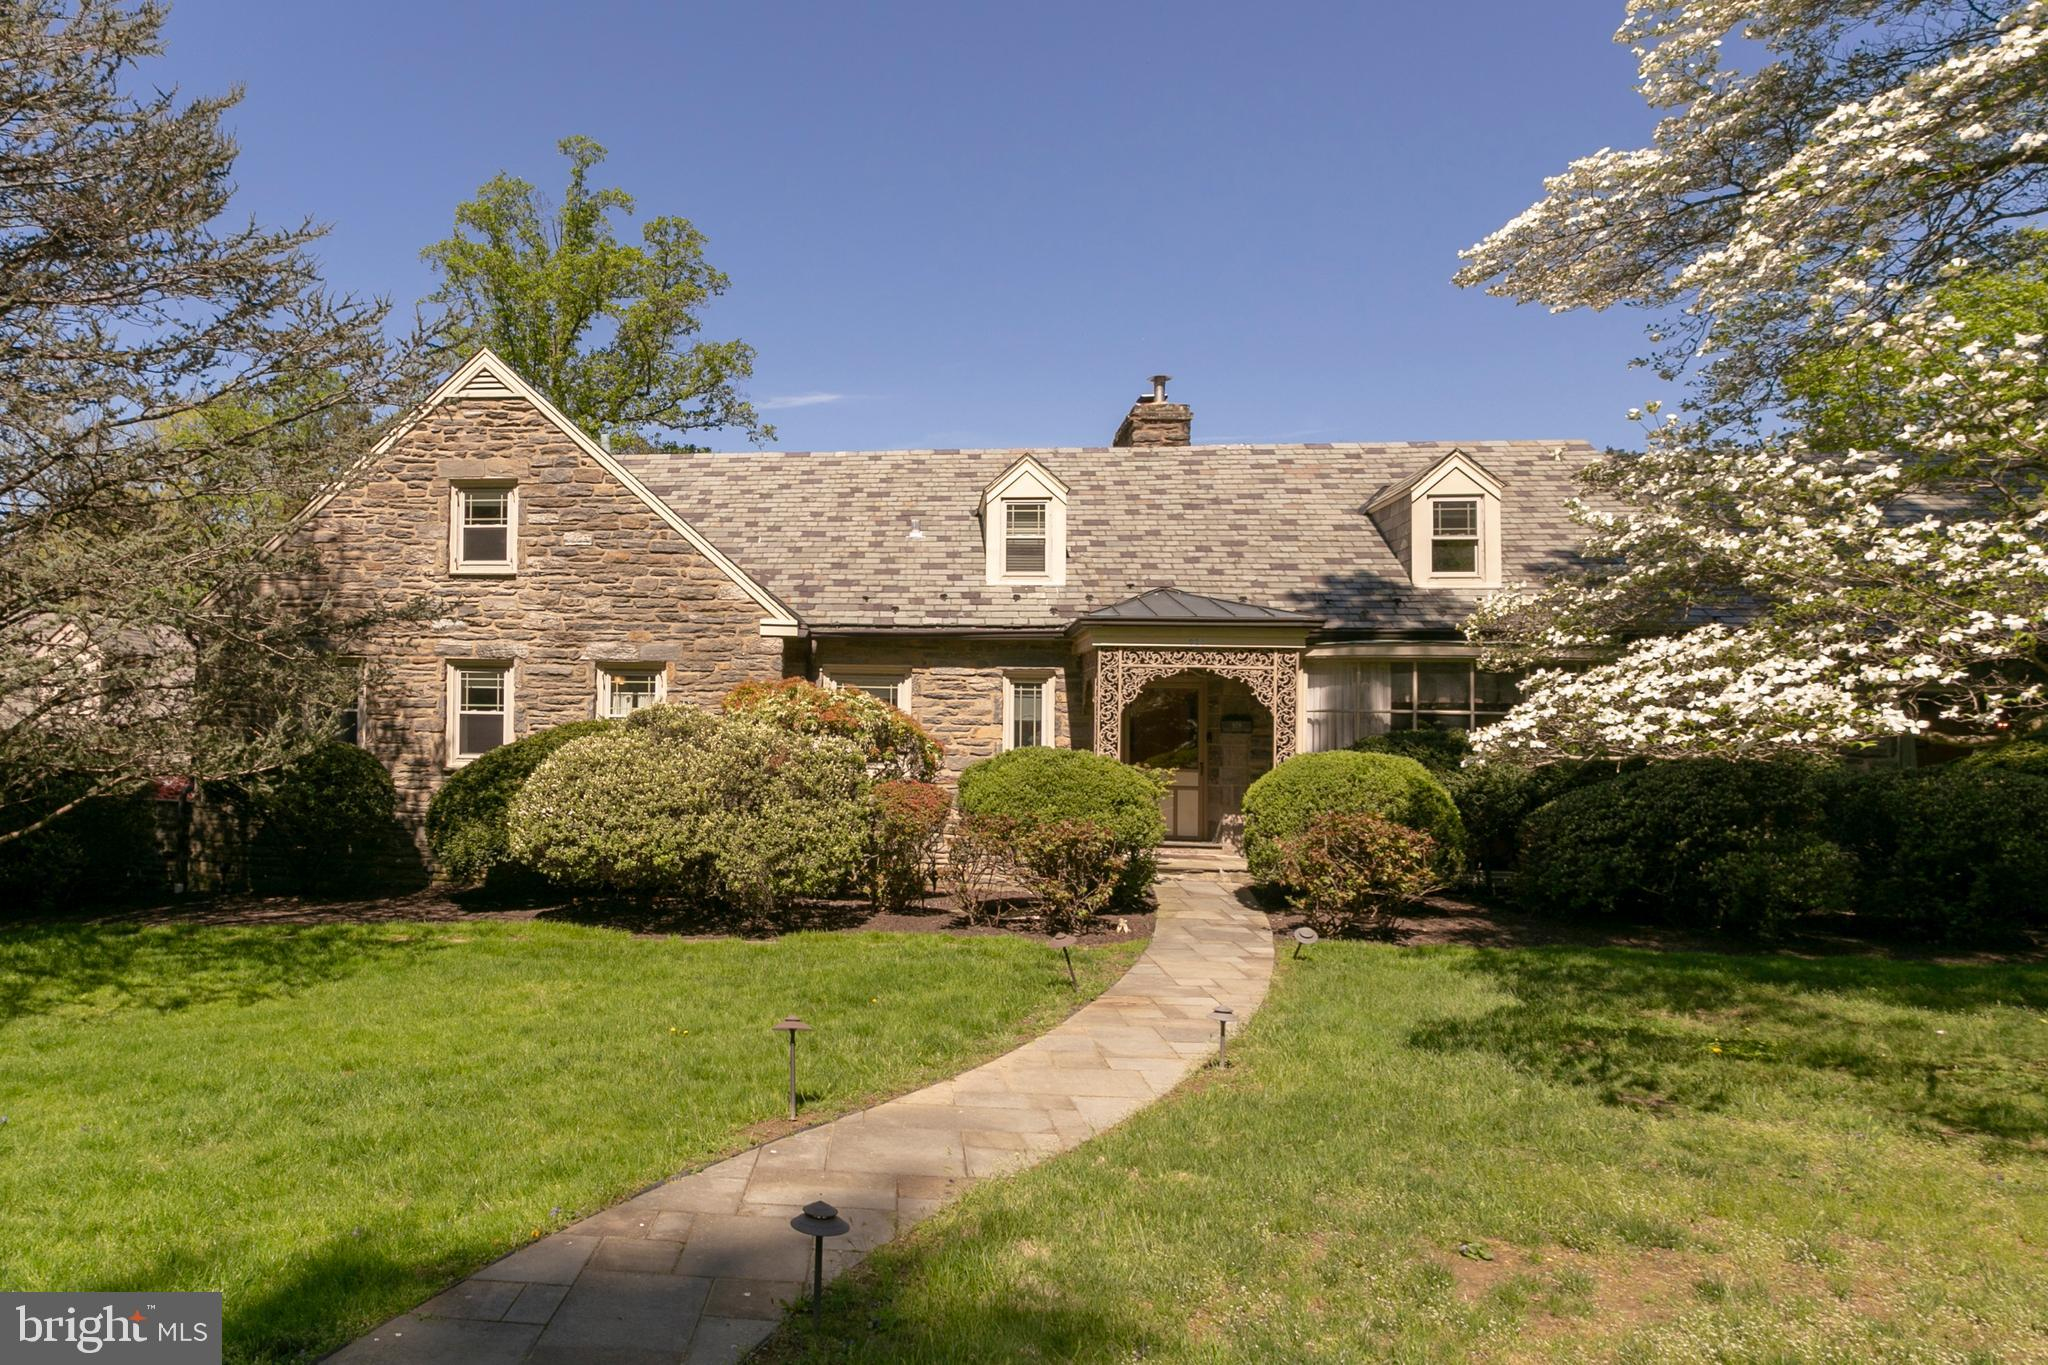 928 FROG HOLLOW TERRACE, RYDAL, PA 19046